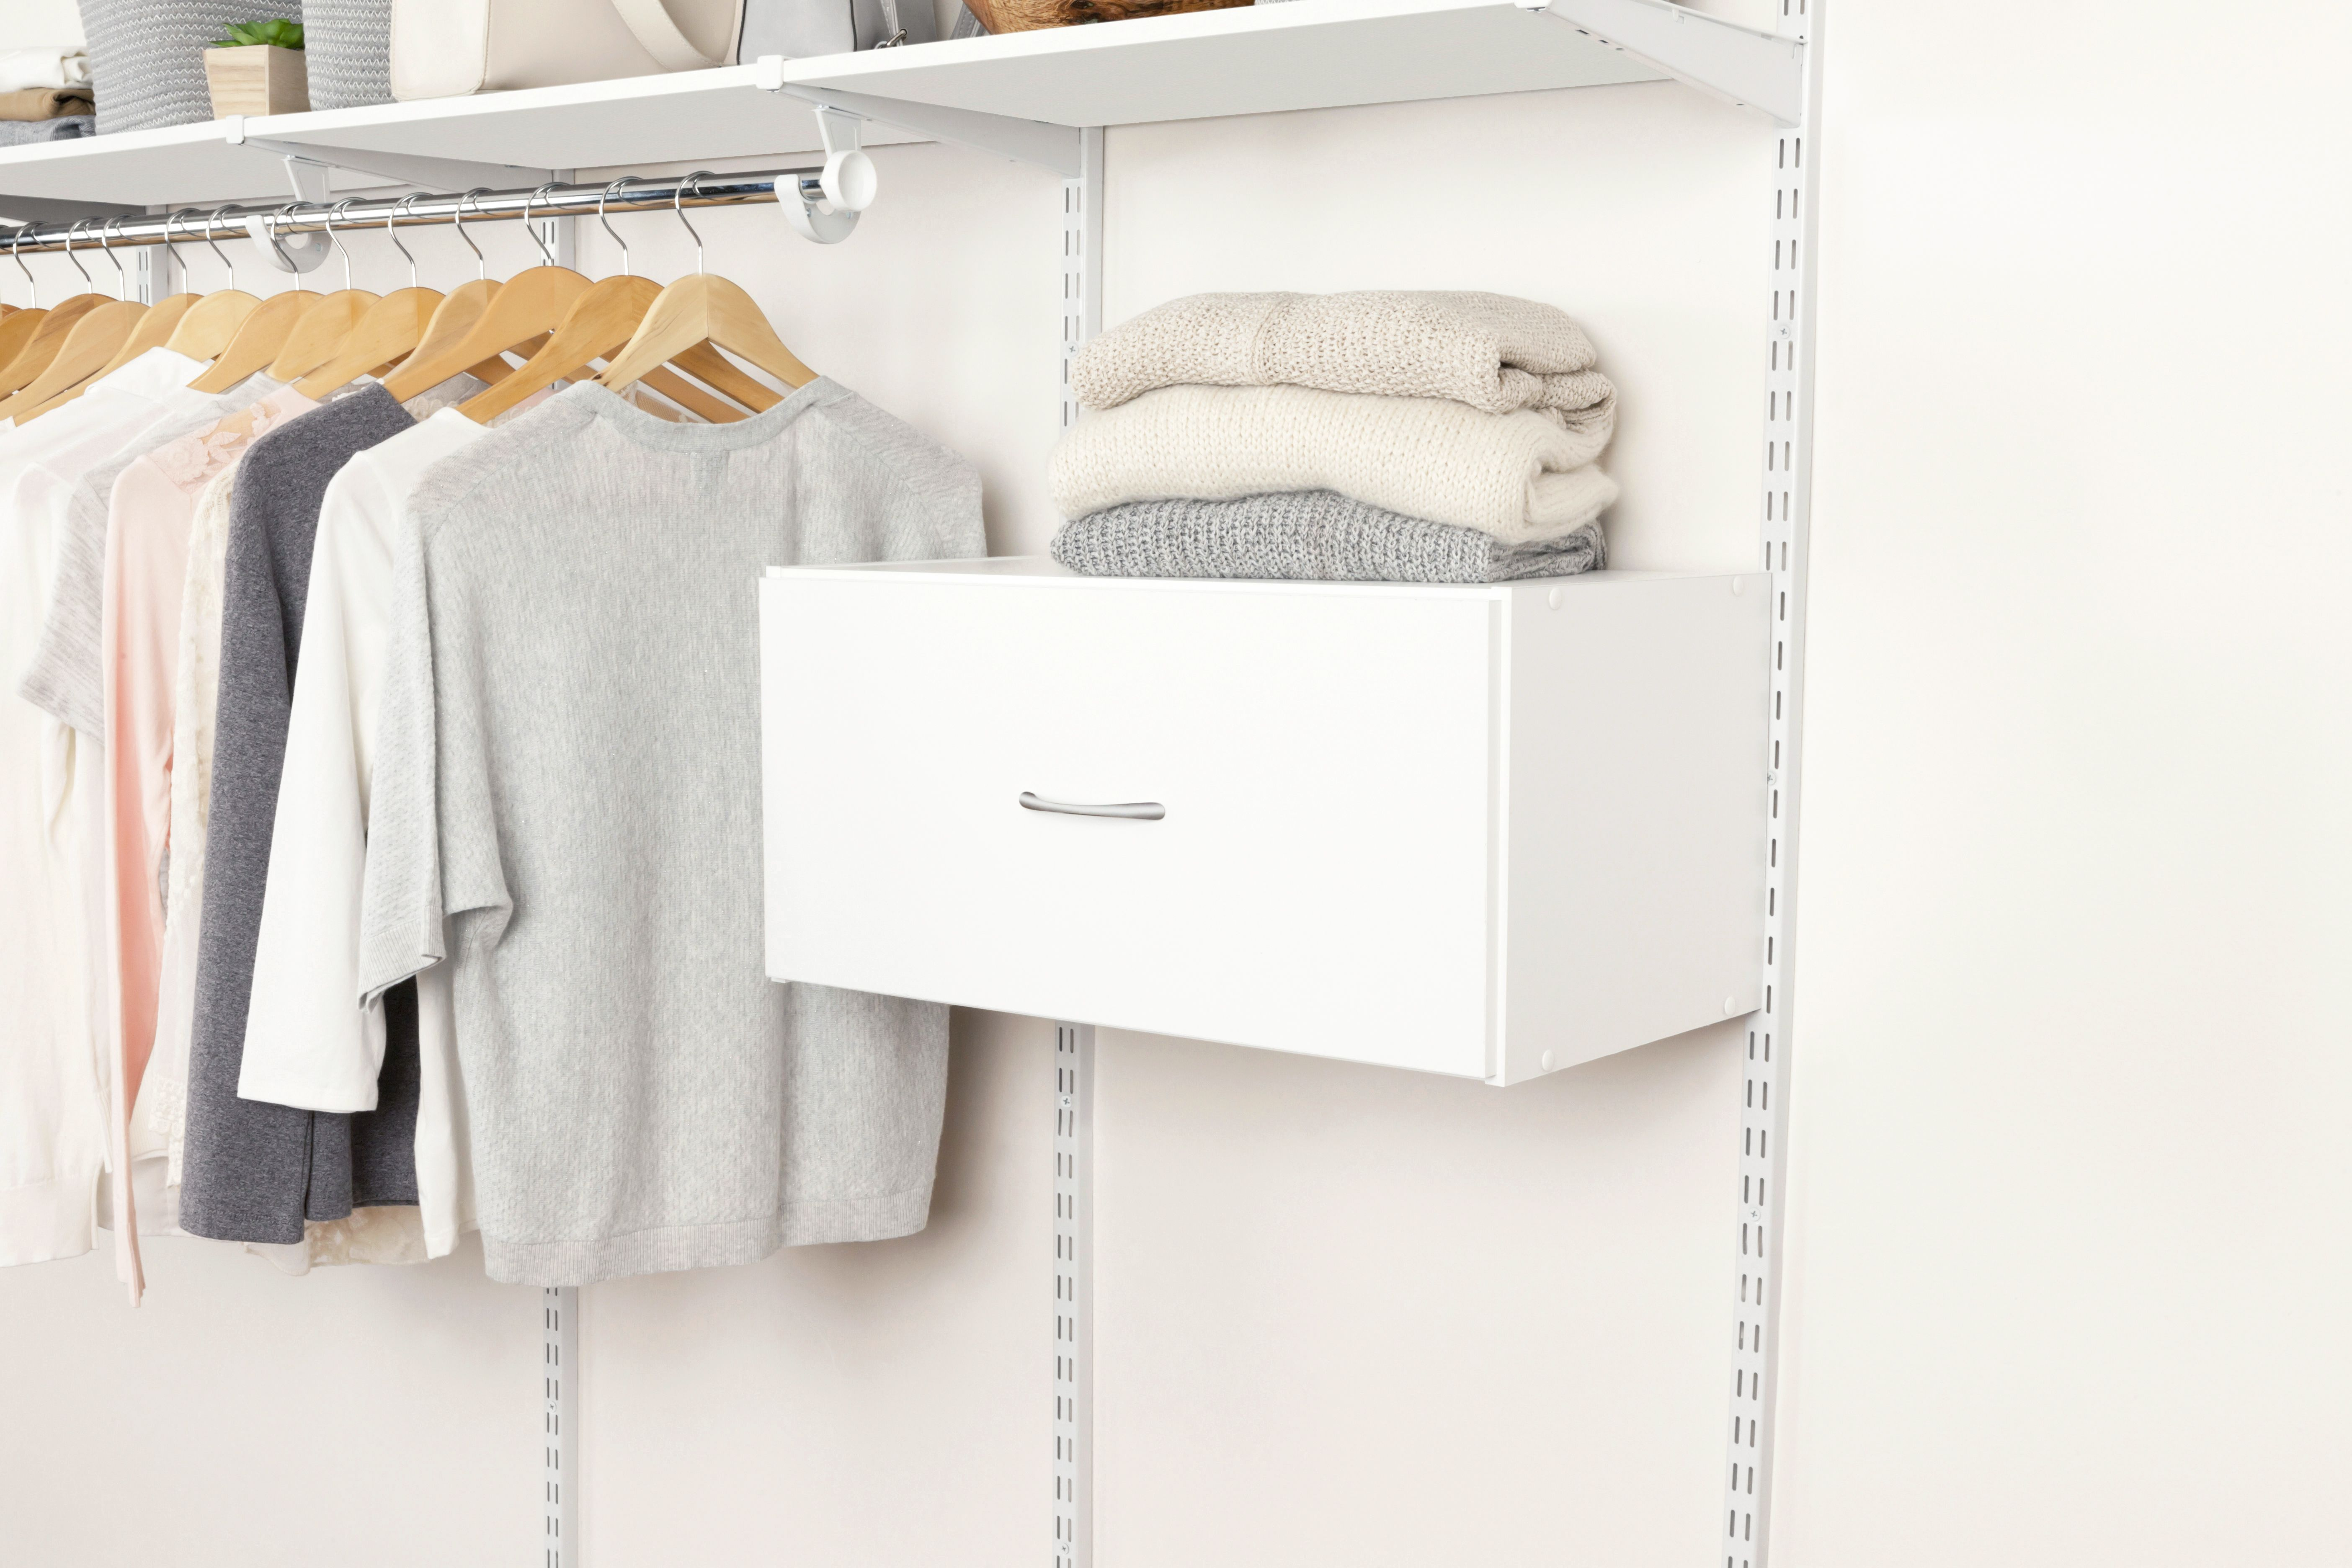 Add Decorative Drawer Space To Your Rubbermaid Fasttrack Closet Rubbermaid Lowes Closet Organization Organize Wood Drawers Drawers Closet Organization